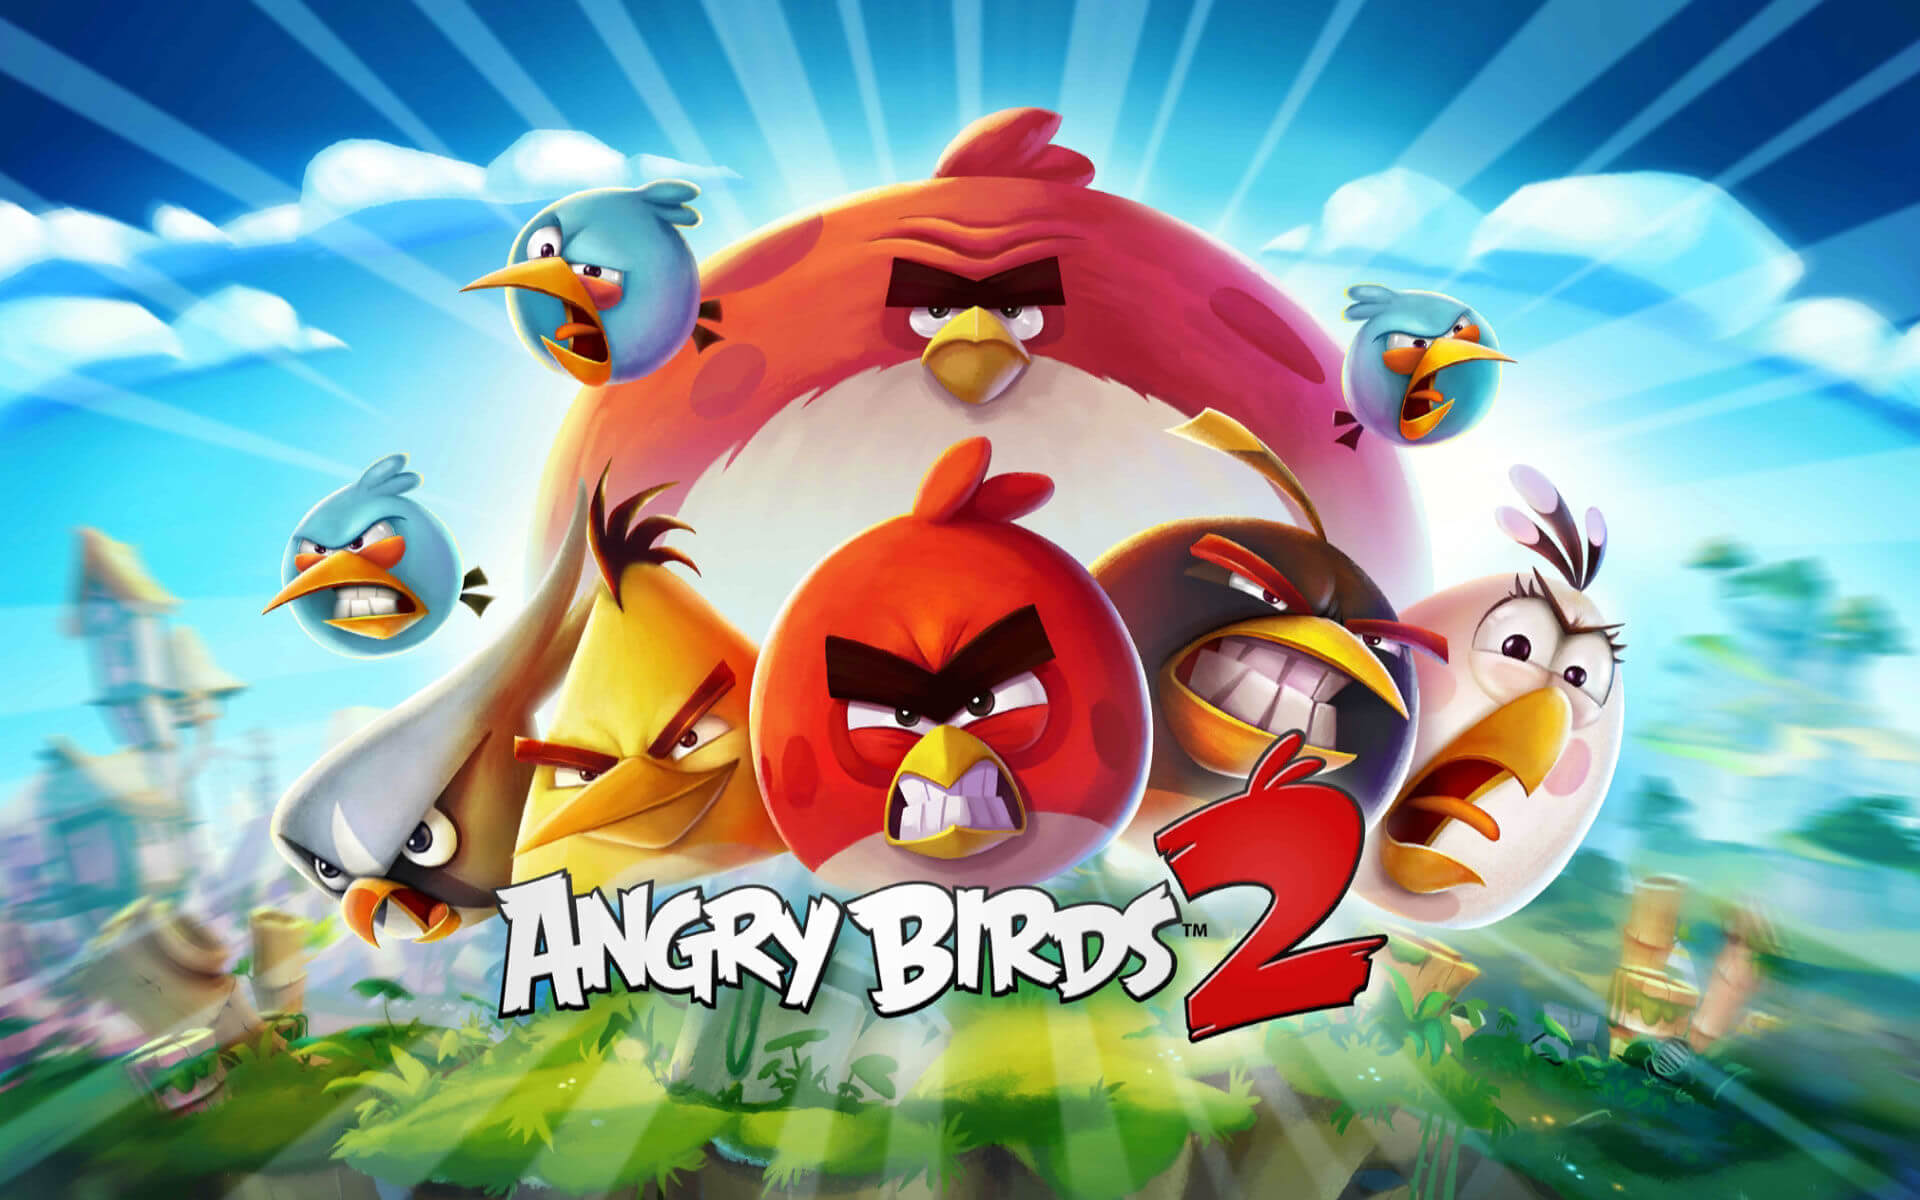 angry birds 2 features